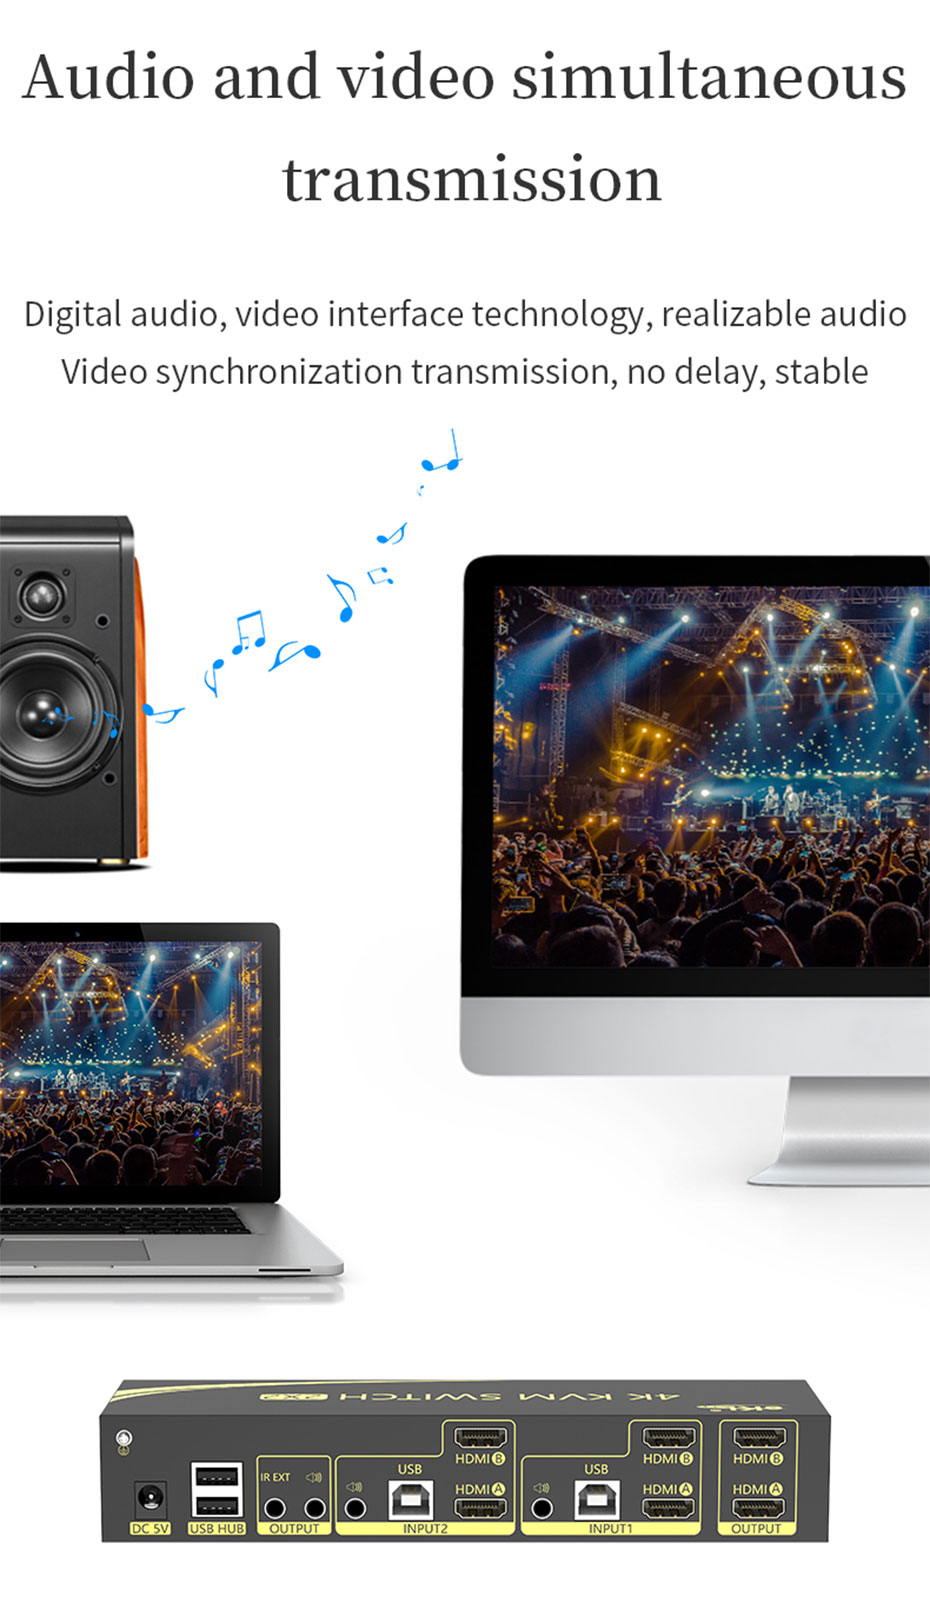 Dual screen HDMI KVM switch 212HK supports simultaneous audio and video transmission